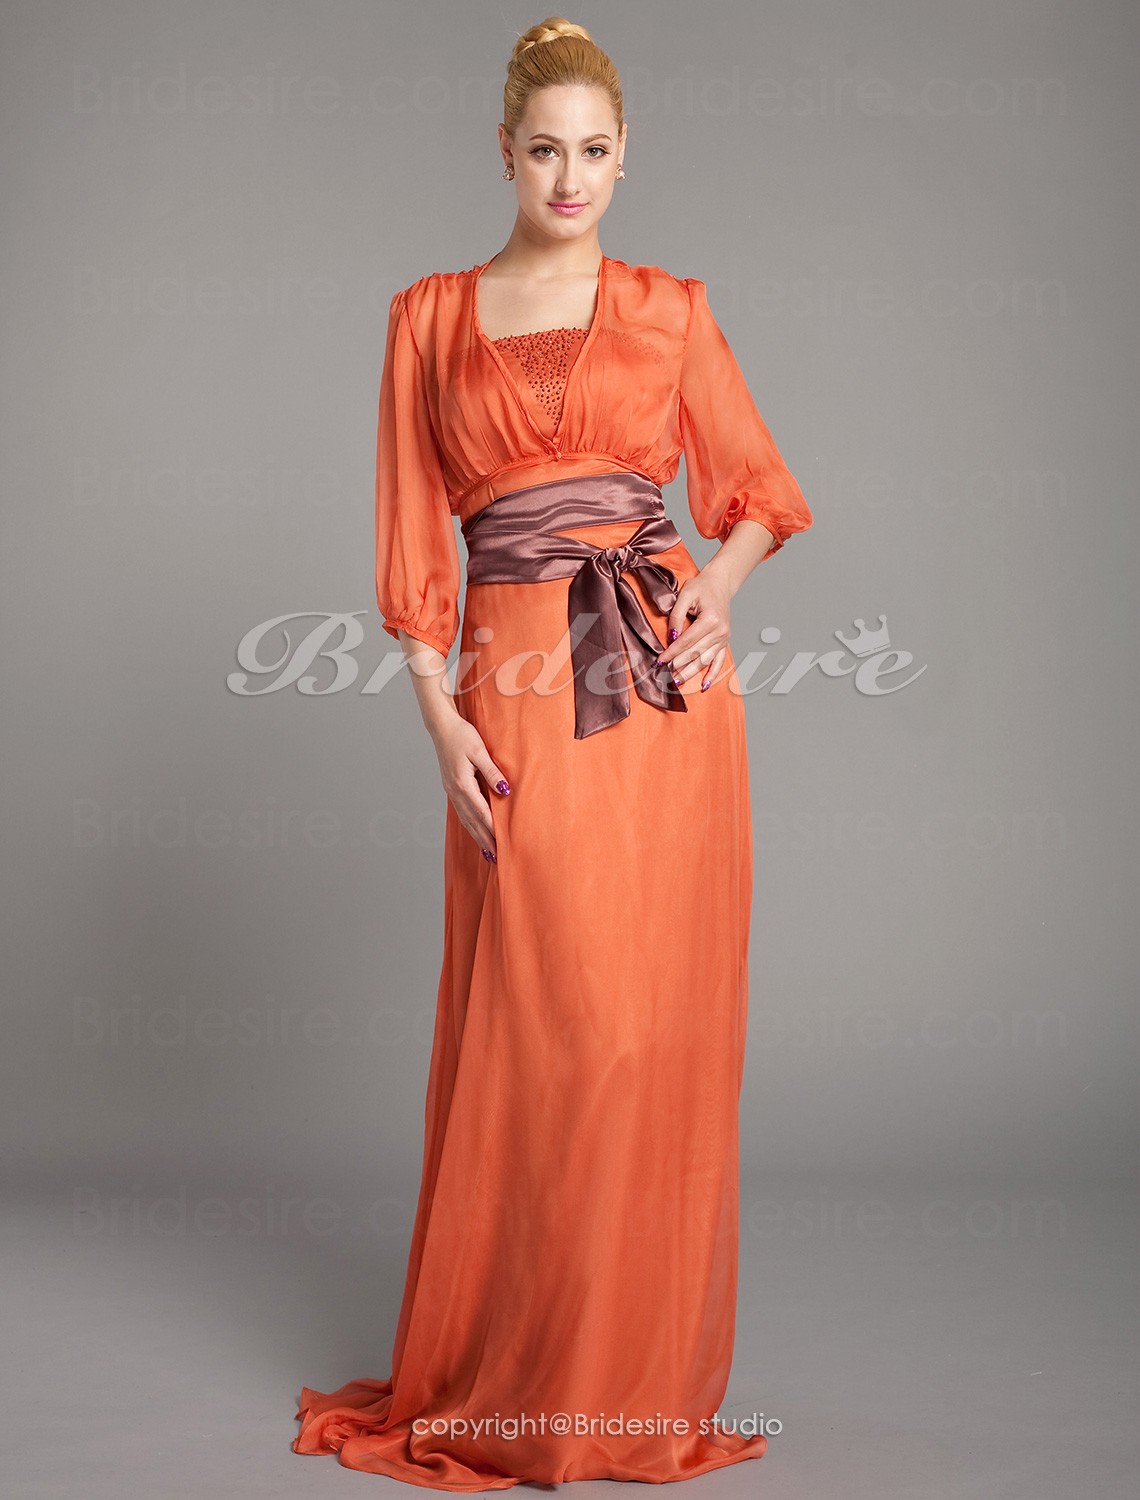 A-line Chiffon Floor-length Strapless Mother of the Bride Dress With A Wrap